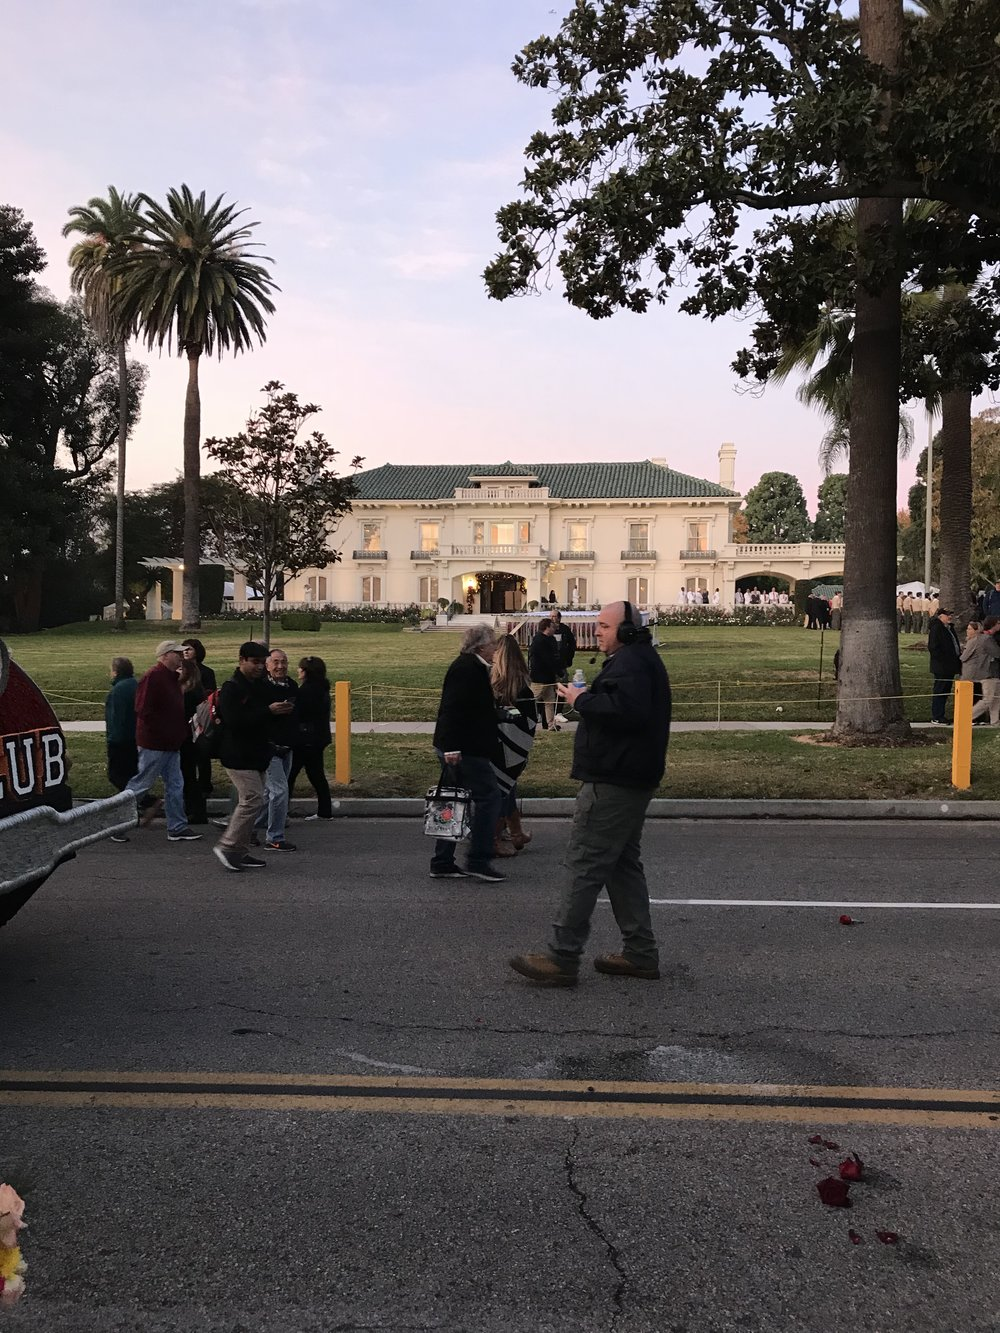 The Wrigley Mansion (shown here) is the headquarters of the New Year's Rose Parade.